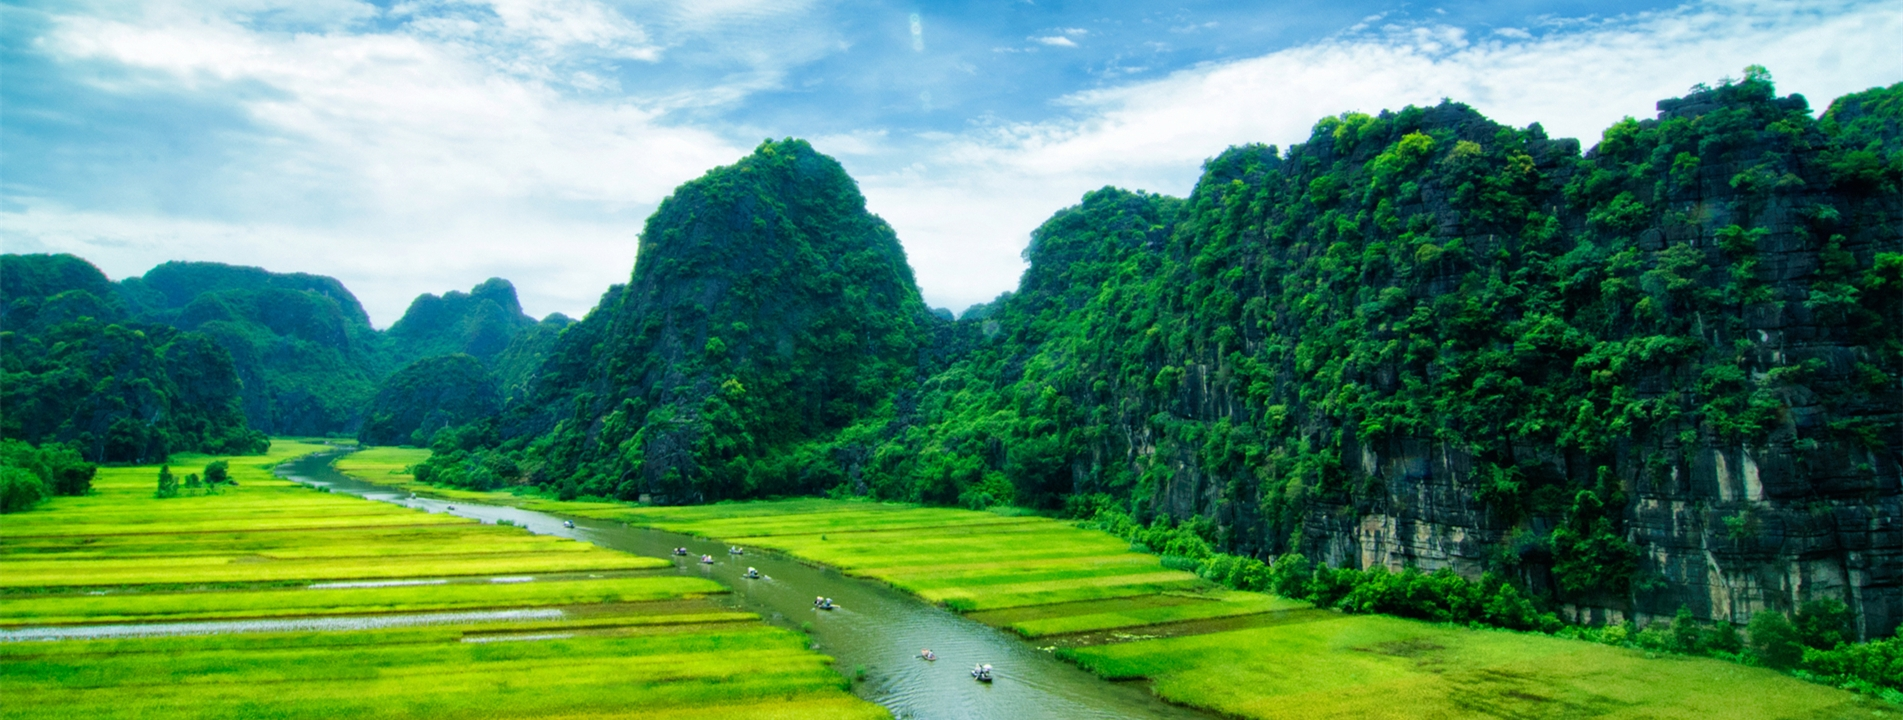 6-Day Northern Vietnam Discovery Tour